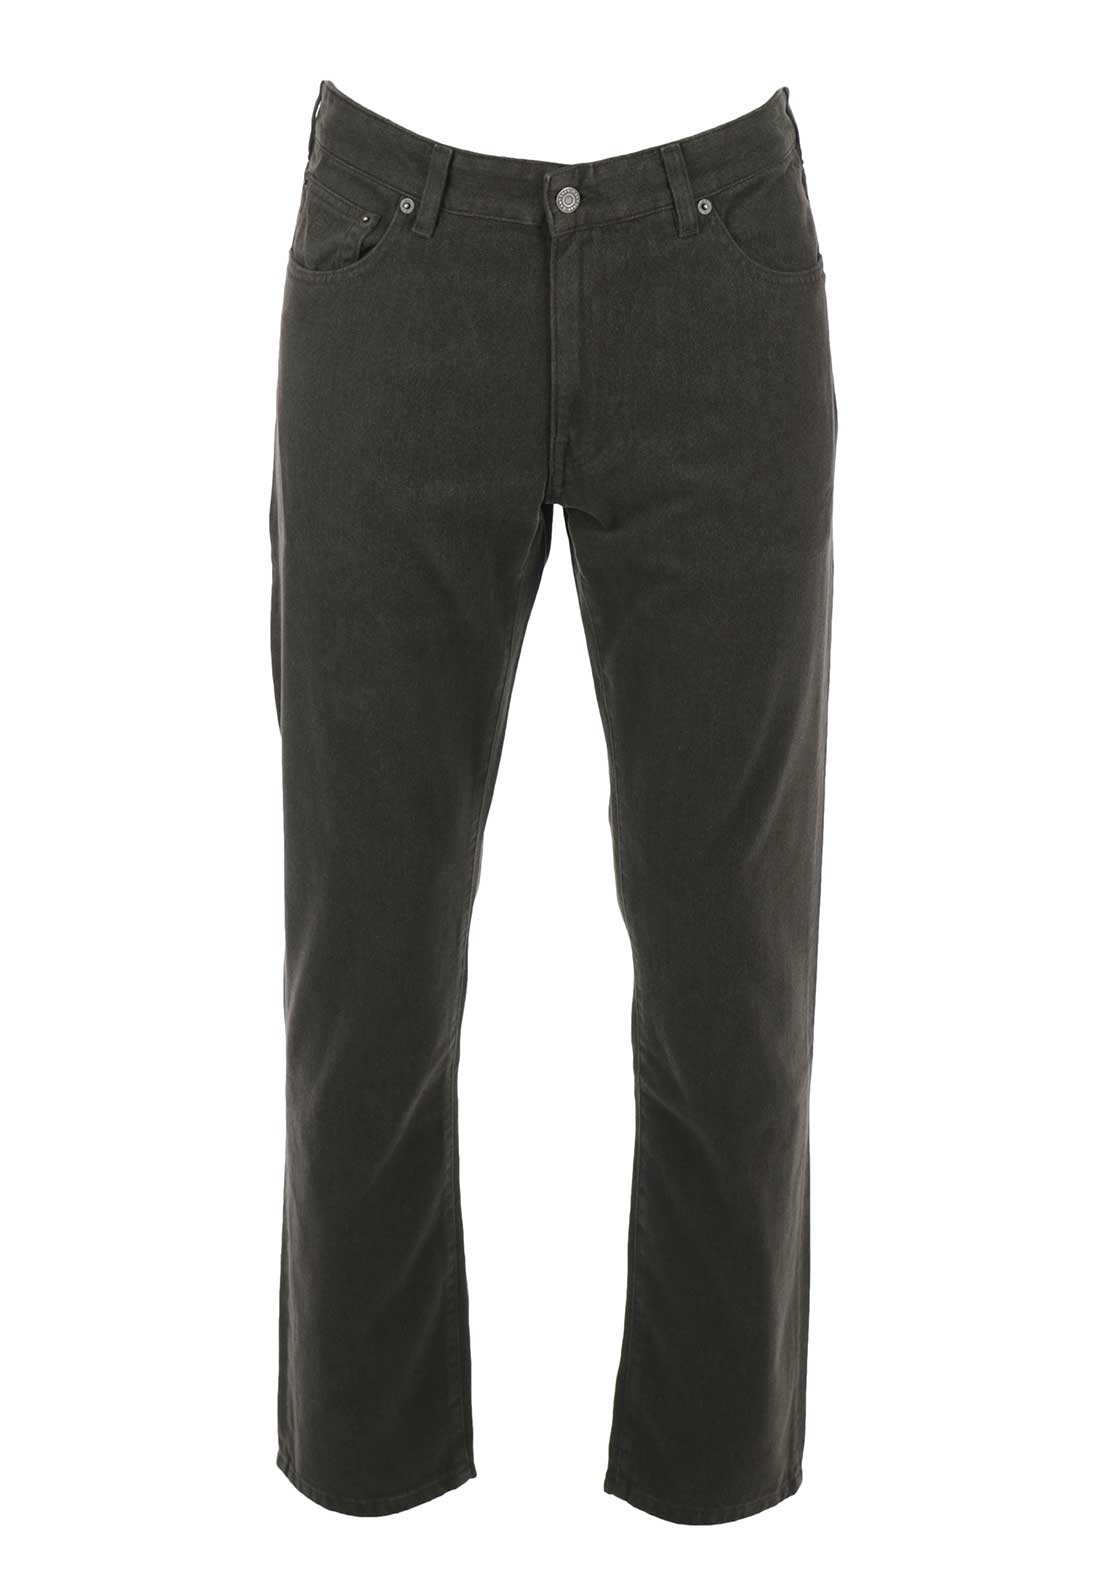 GANT Mens Regular Straight Soft Twill Jeans, Dark Brown